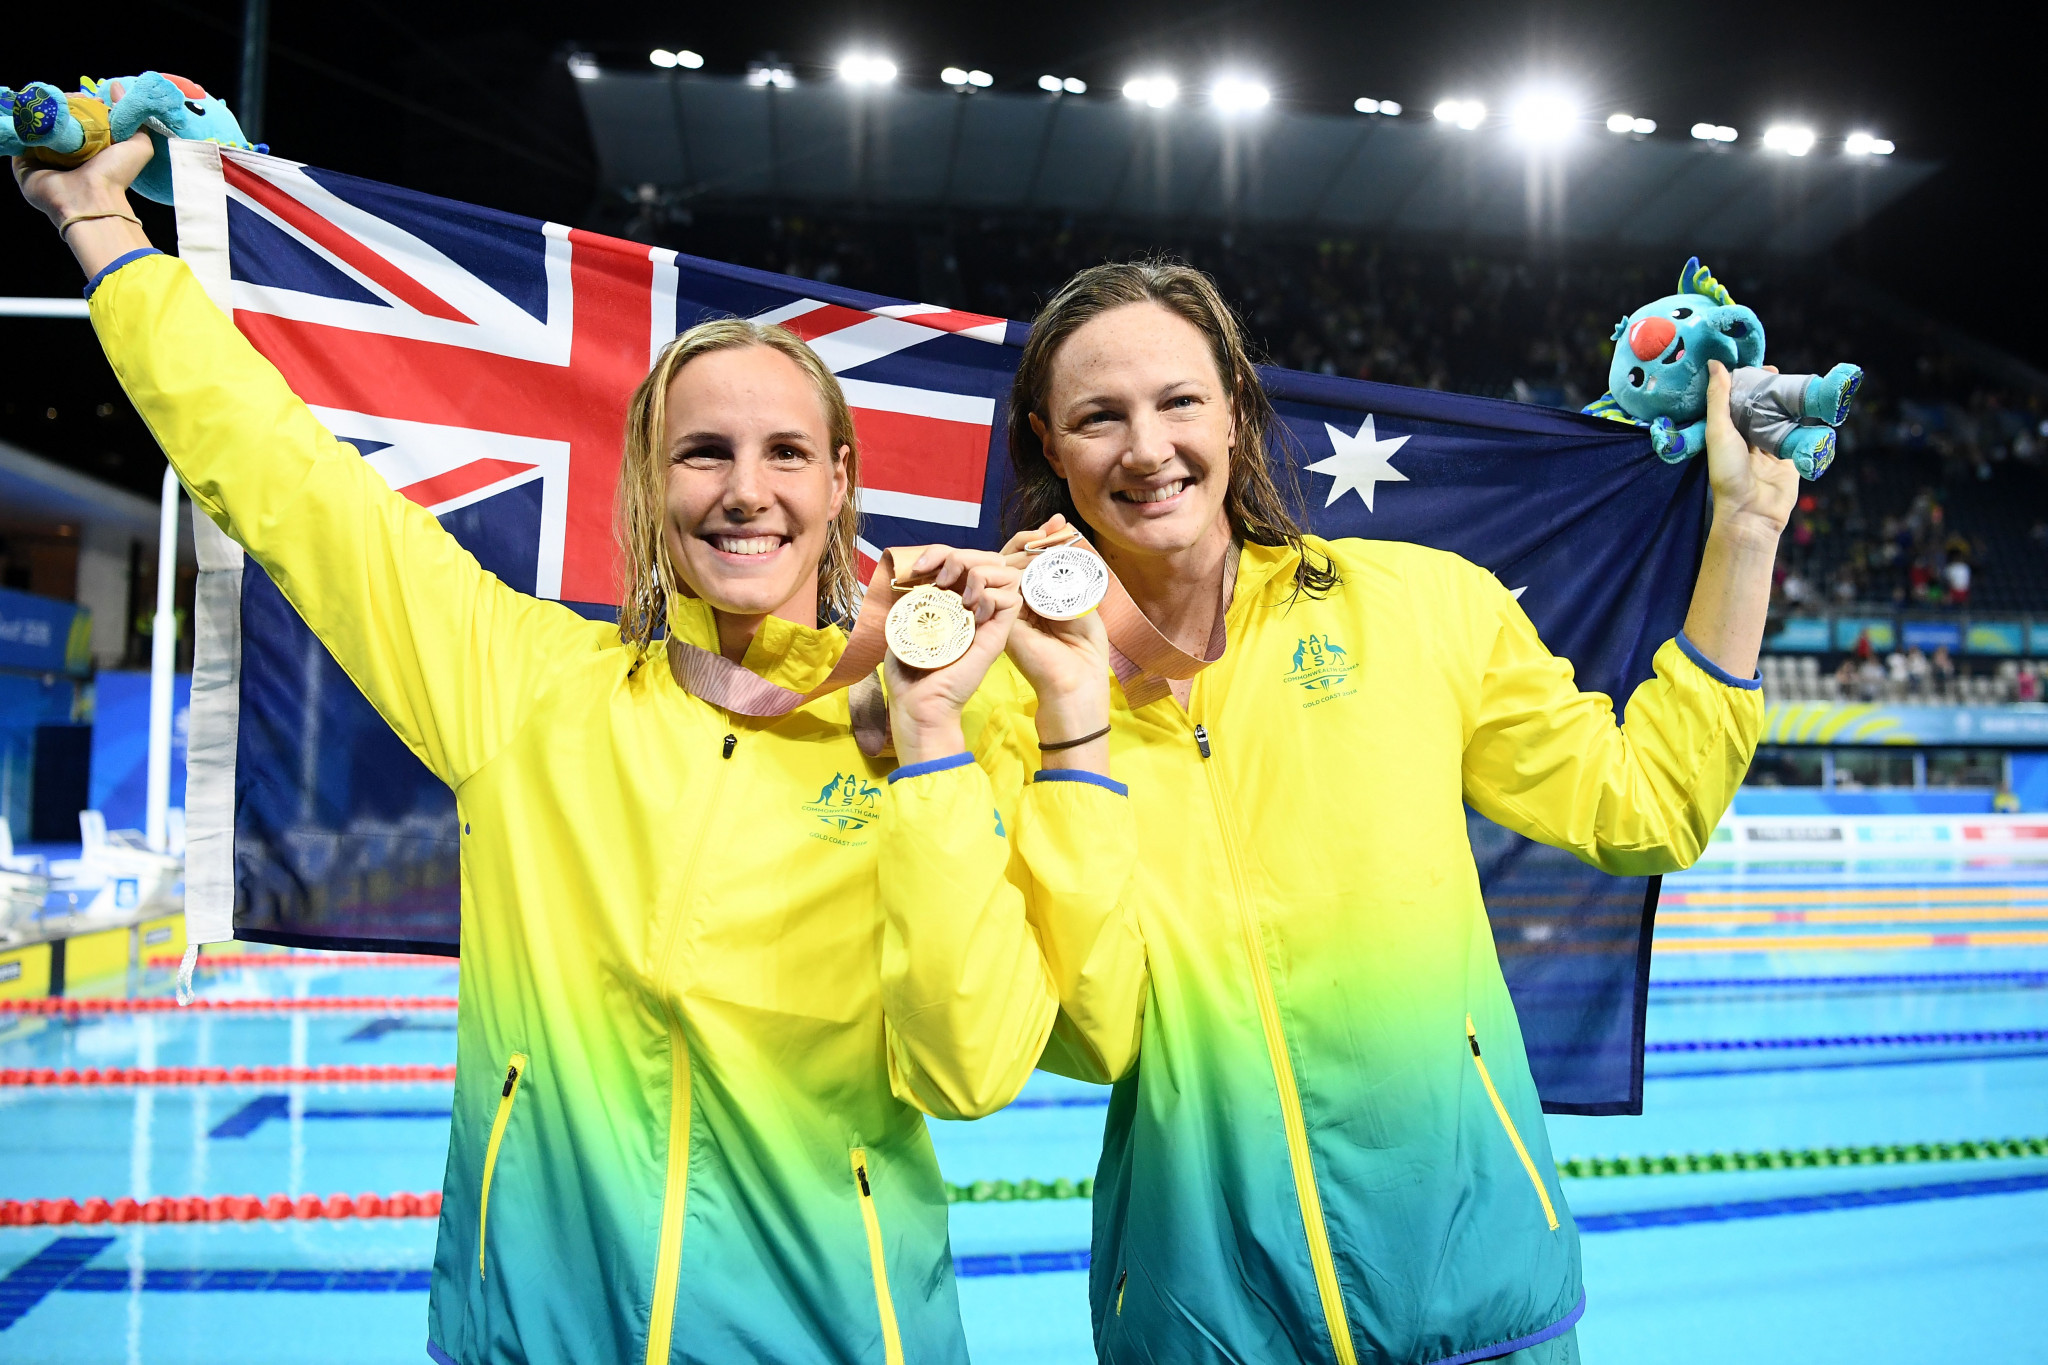 Bronte beats sister Cate as Van der Burgh stuns Peaty on thrilling night of swimming at Gold Coast 2018